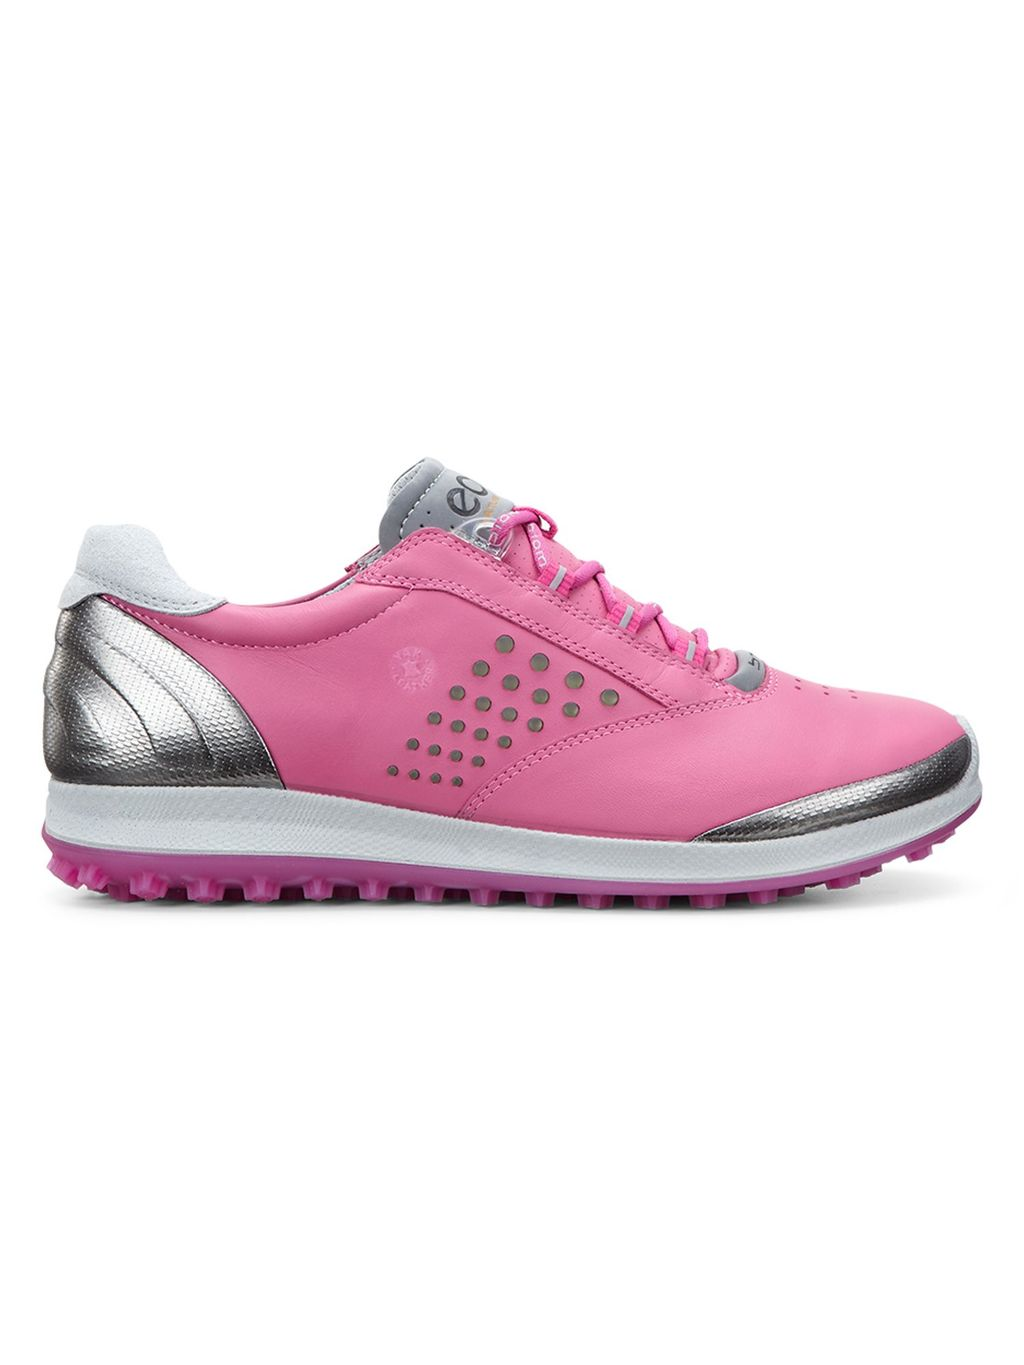 Biom Hybrid 2 Golf Shoes, Pink - predominant colour: pink; secondary colour: silver; occasions: casual; material: leather; heel height: flat; toe: round toe; style: trainers; finish: metallic; pattern: plain; shoe detail: tread; season: a/w 2015; wardrobe: highlight